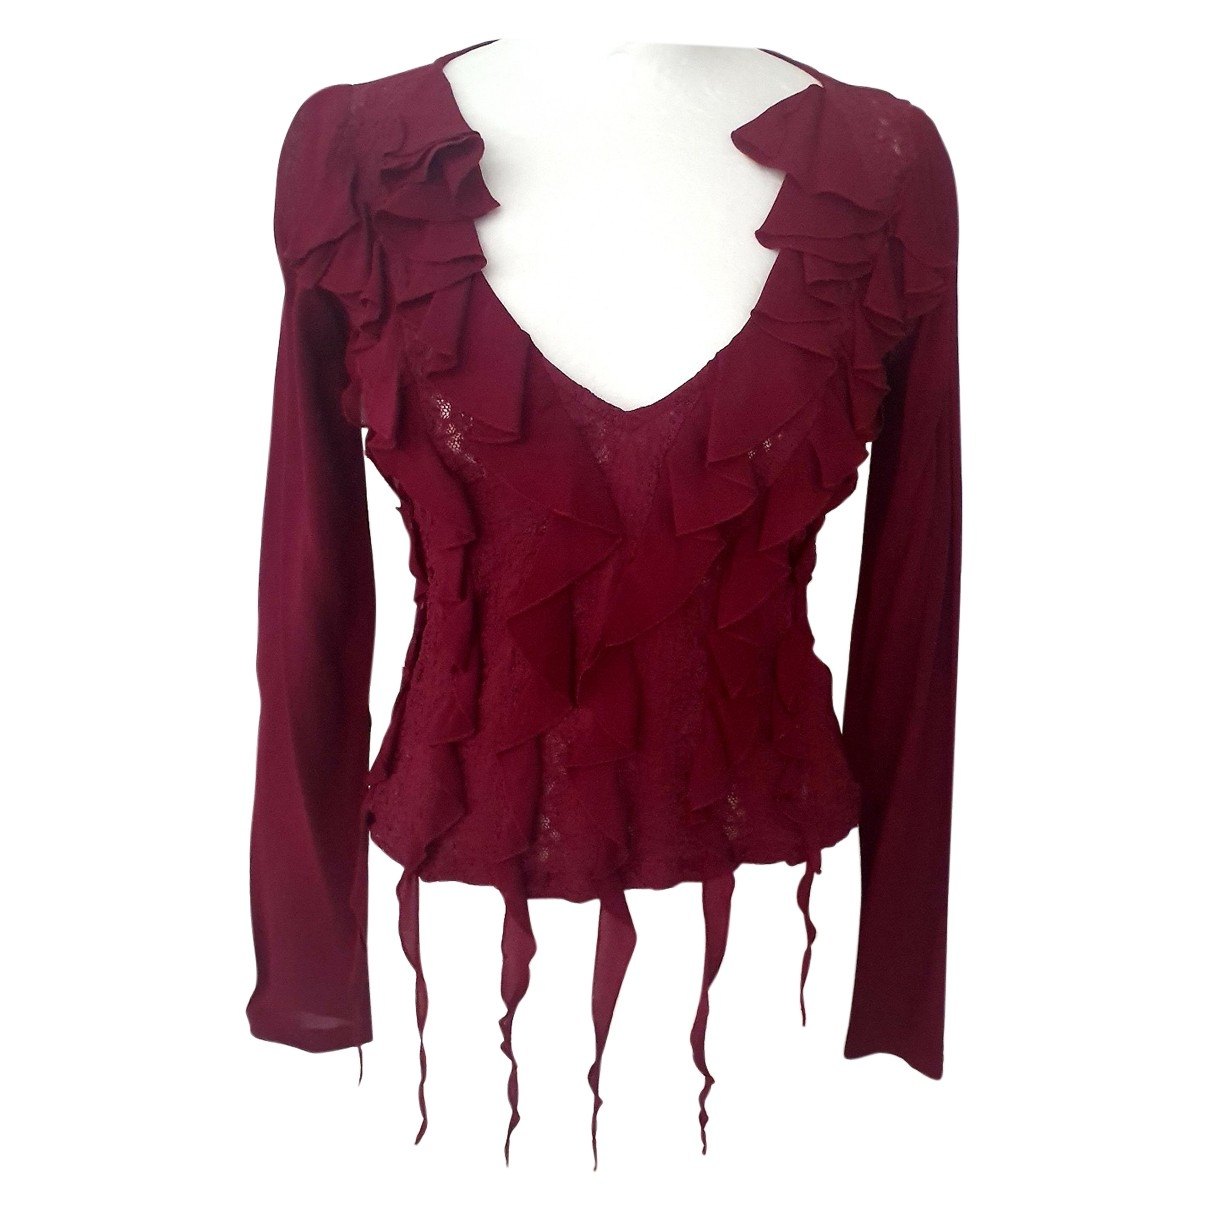 Versace Jeans \N Burgundy  top for Women S International